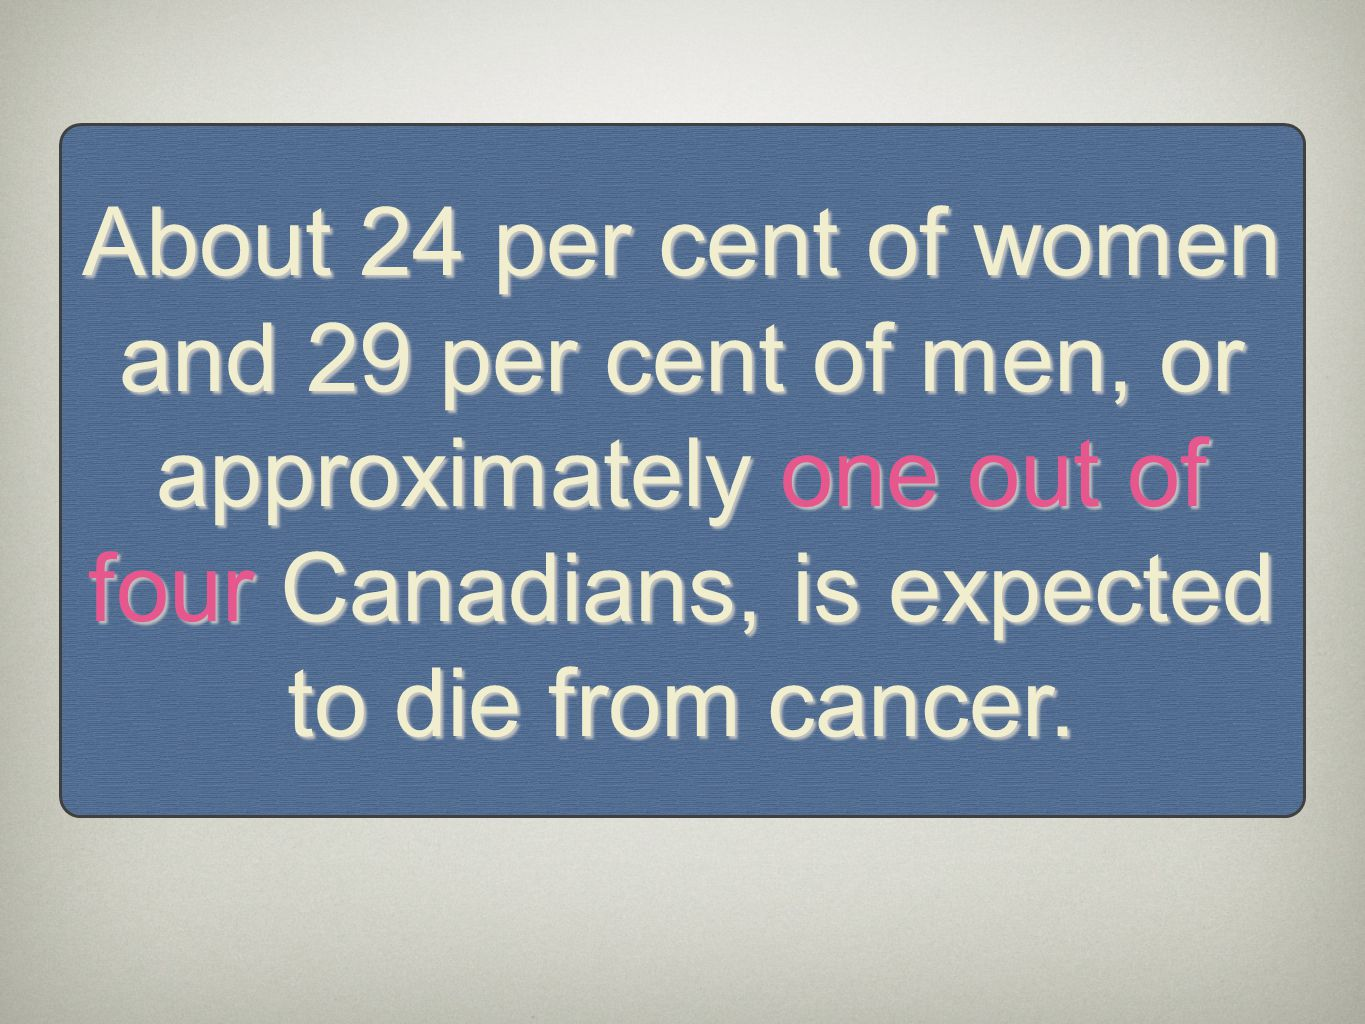 About 24 per cent of women and 29 per cent of men, or approximately one out of four Canadians, is expected to die from cancer.